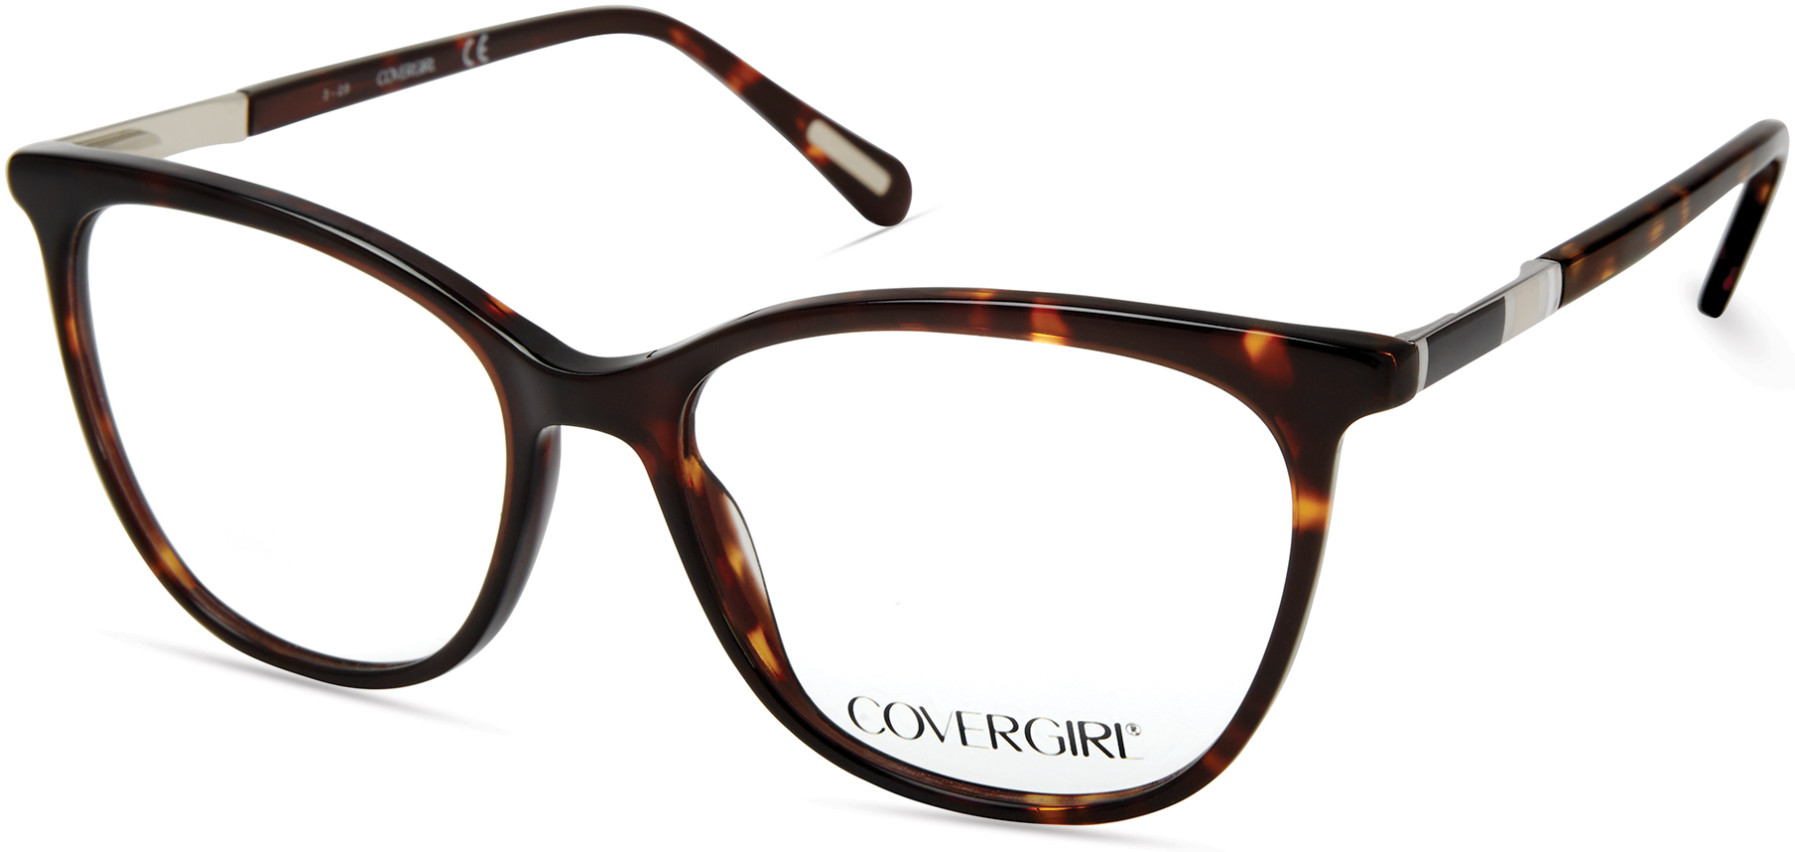 Cover Girl Eyeglasses<br>CG 4004